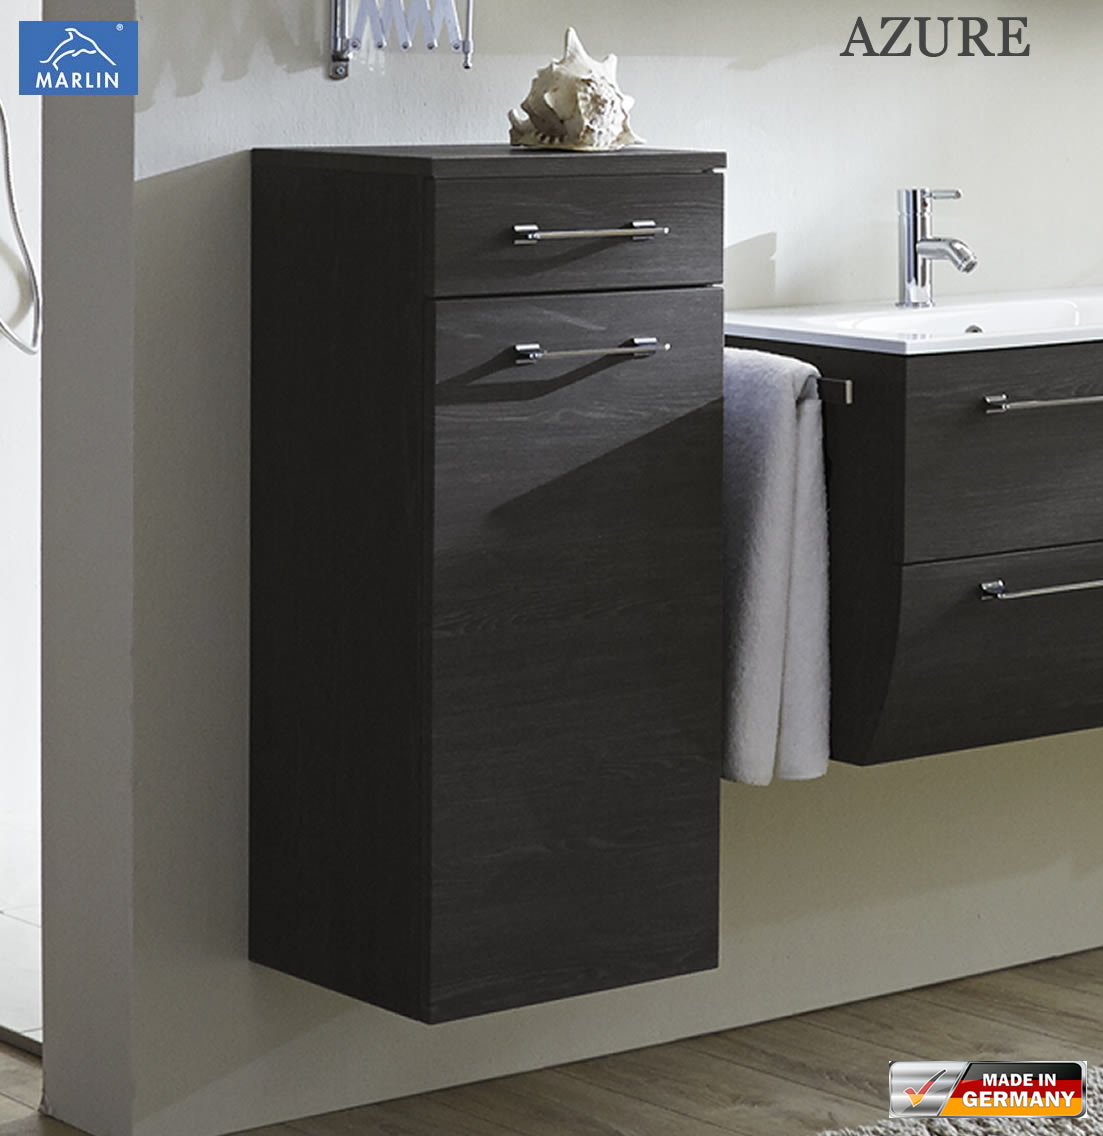 marlin azure highboard 40 cm breite 1 t r 1 auszug impuls home. Black Bedroom Furniture Sets. Home Design Ideas